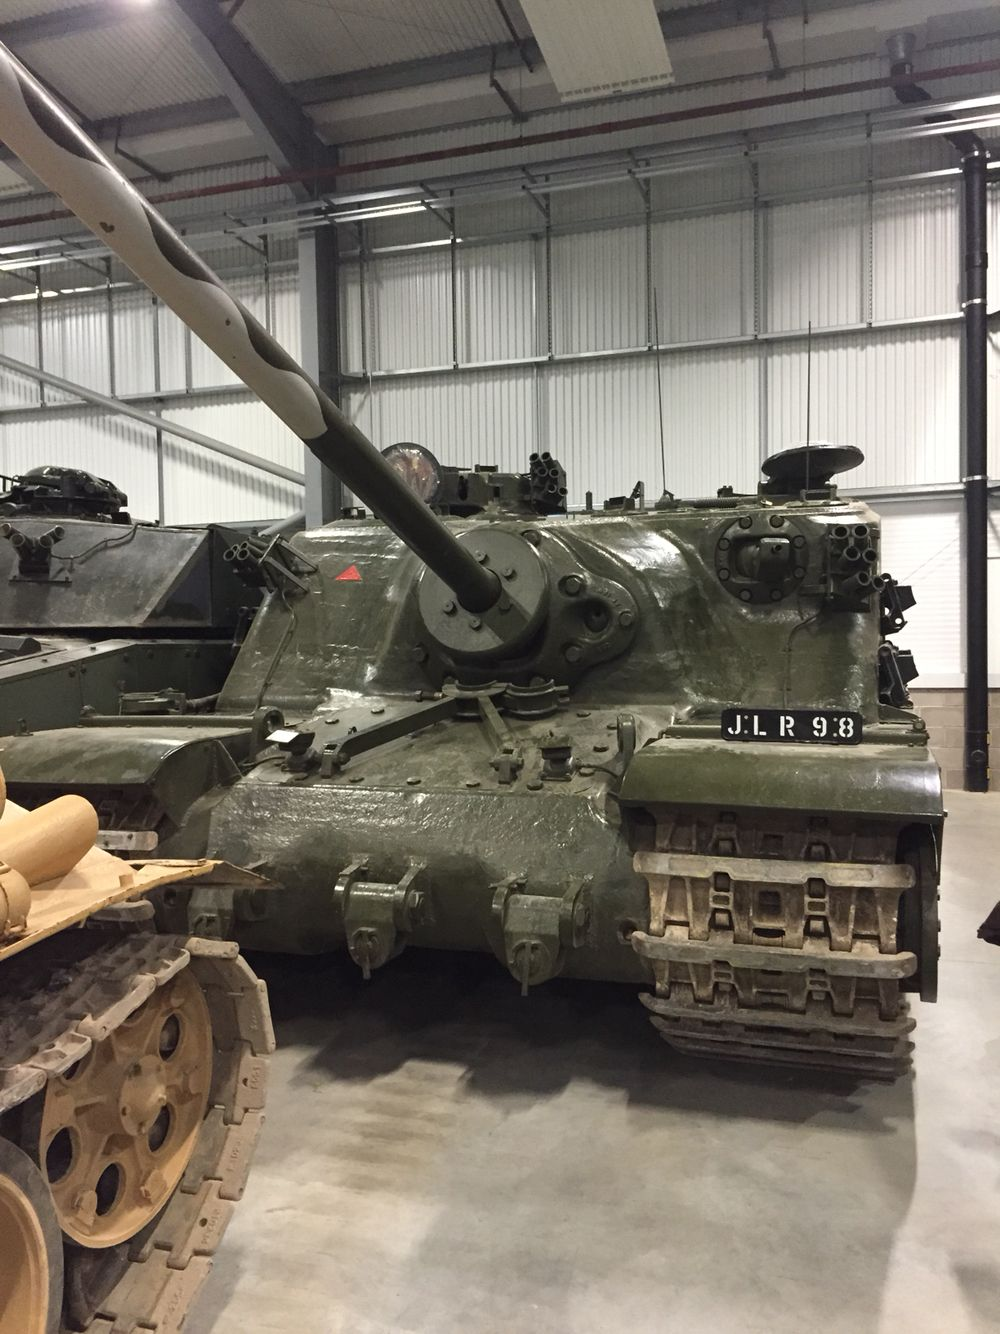 The only surviving example of the Tortoise super-heavy tank, preserved at the Tank Museum at Bovington.